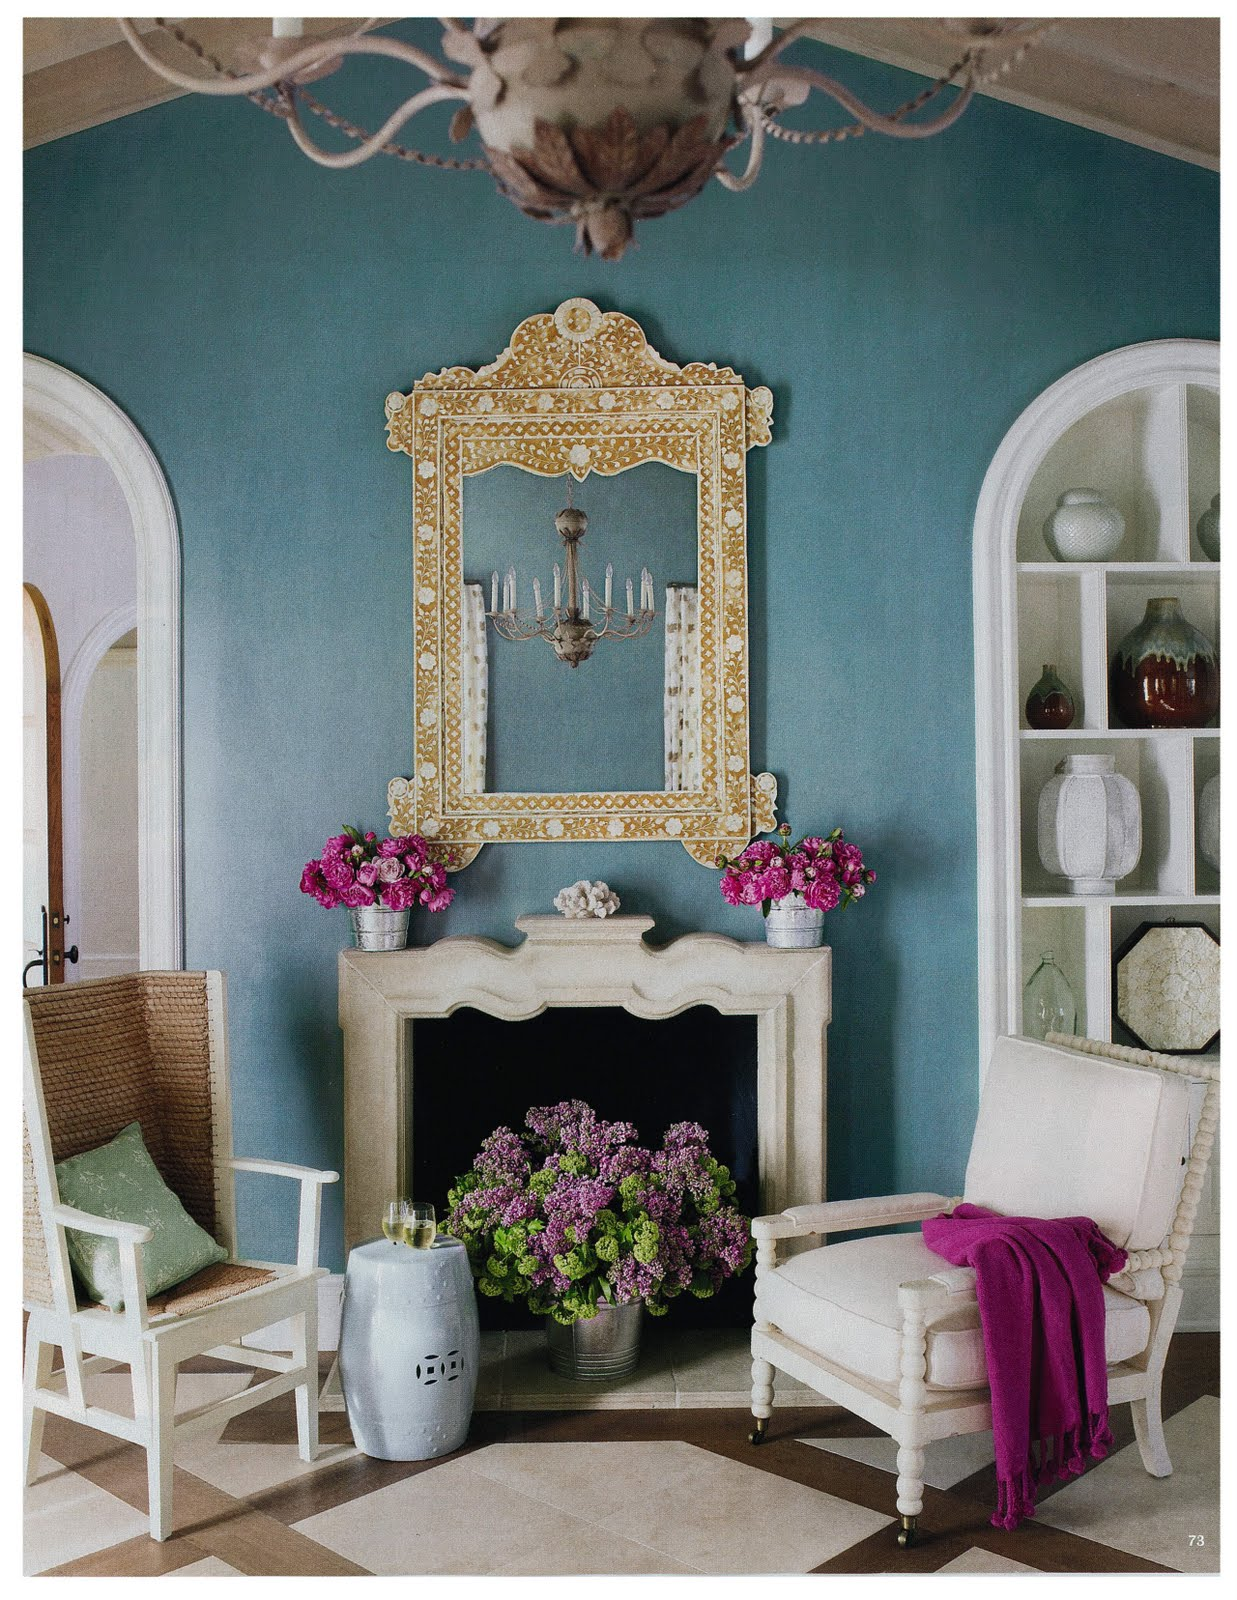 Abellina's Annotations: House Beautiful June 2010